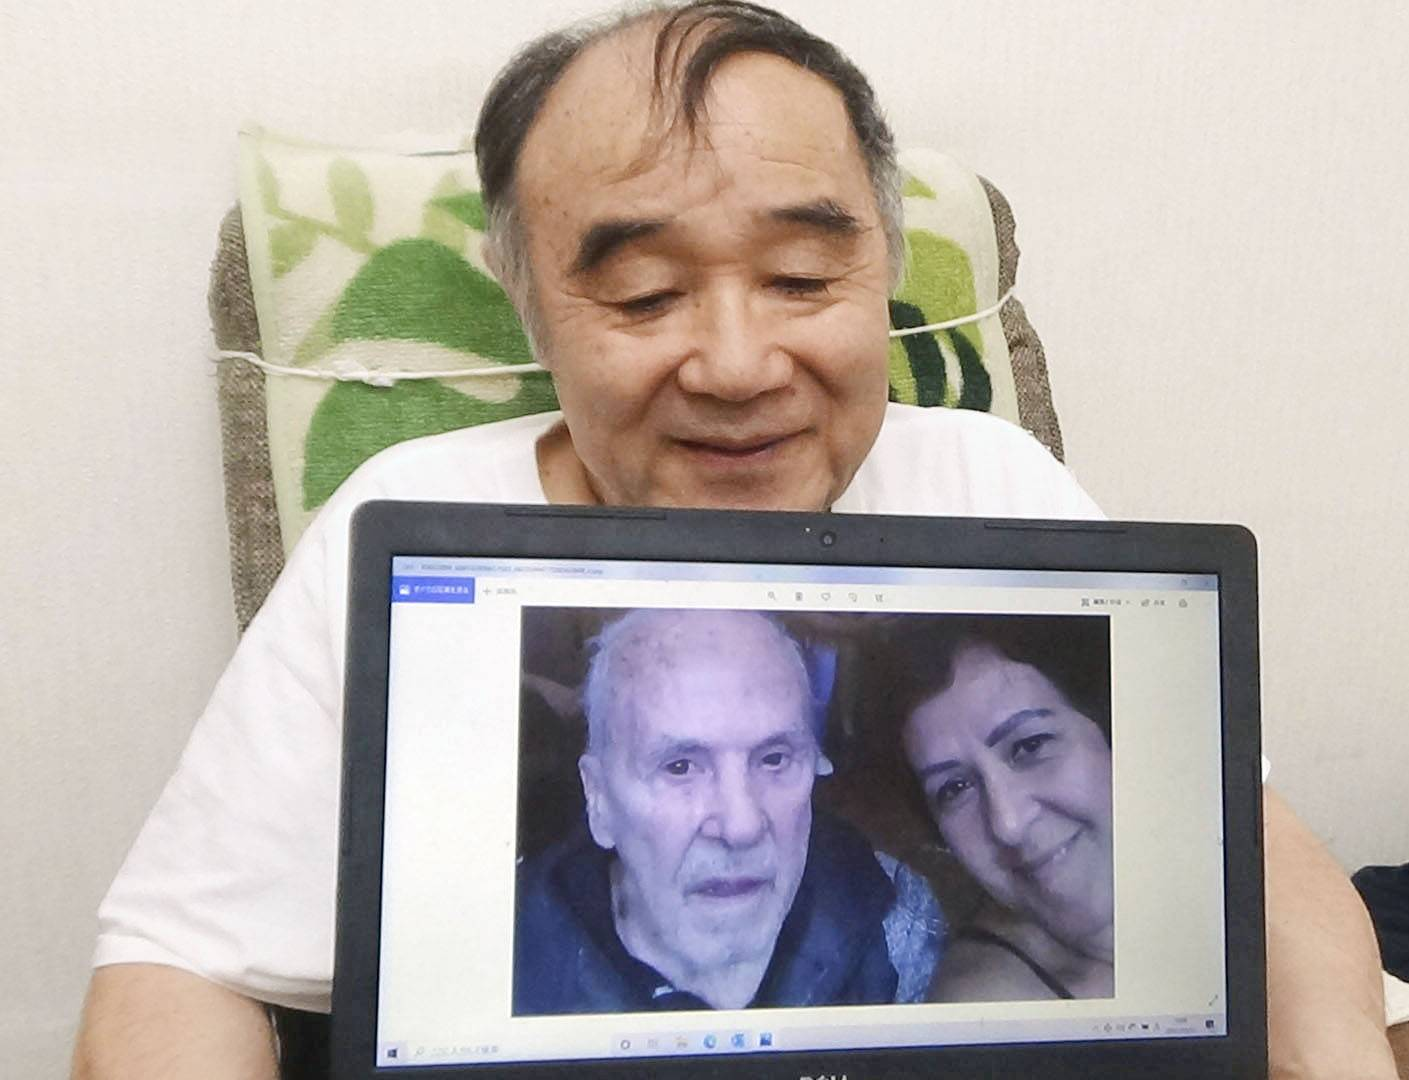 Masahiko Harada poses with a screen showing a photo of Eder Jofre, with whom he has recently exchanged a series of video messages. | AKIHIDE ISHII / VIA KYODO